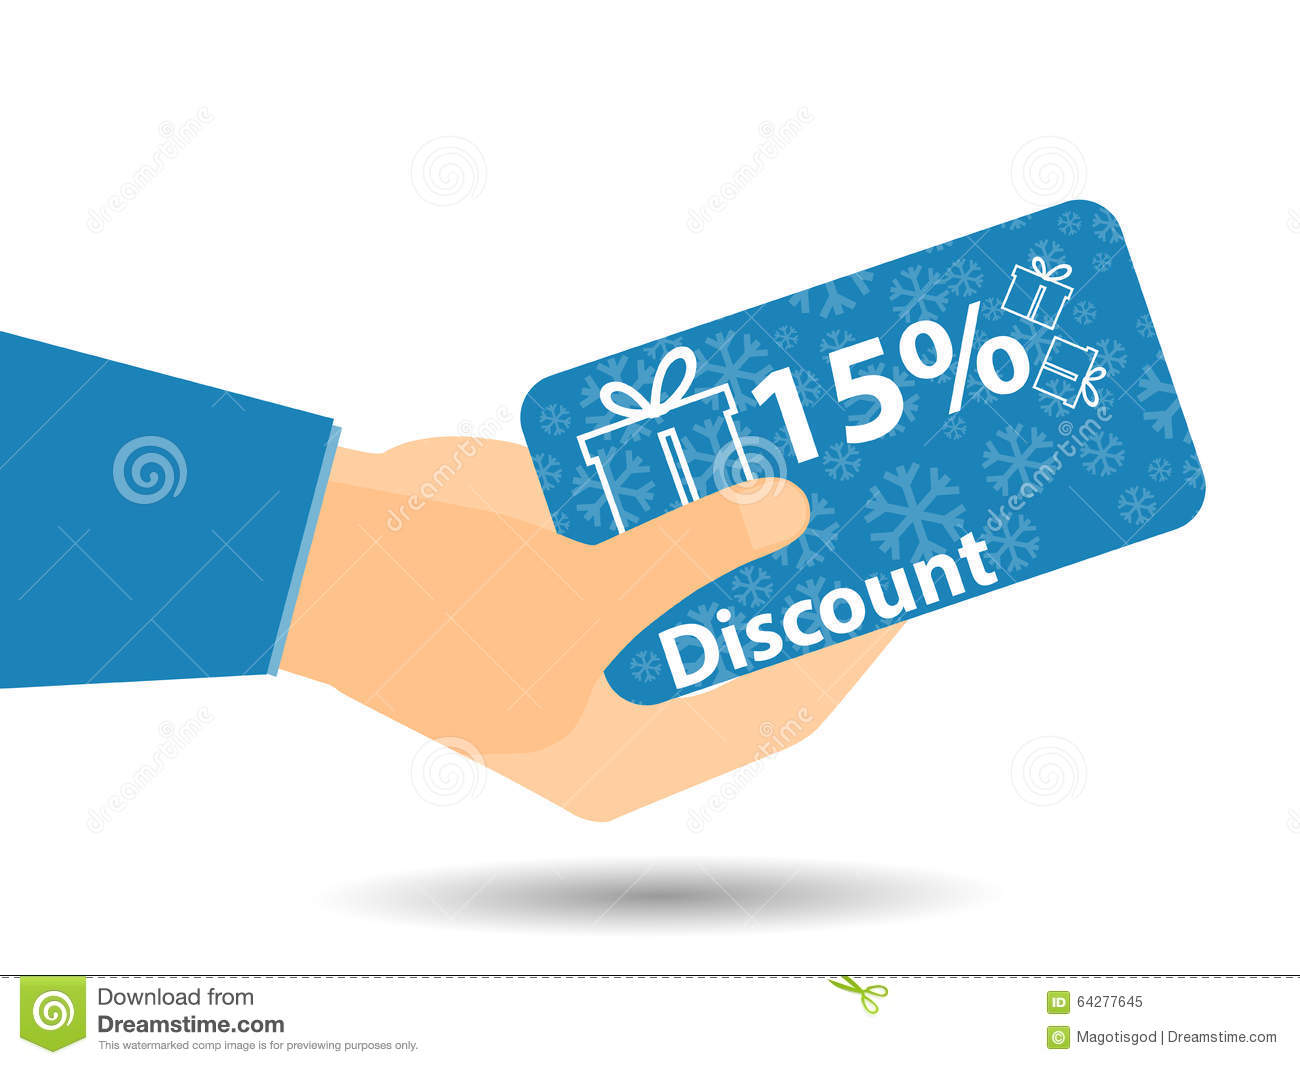 David z discount coupons